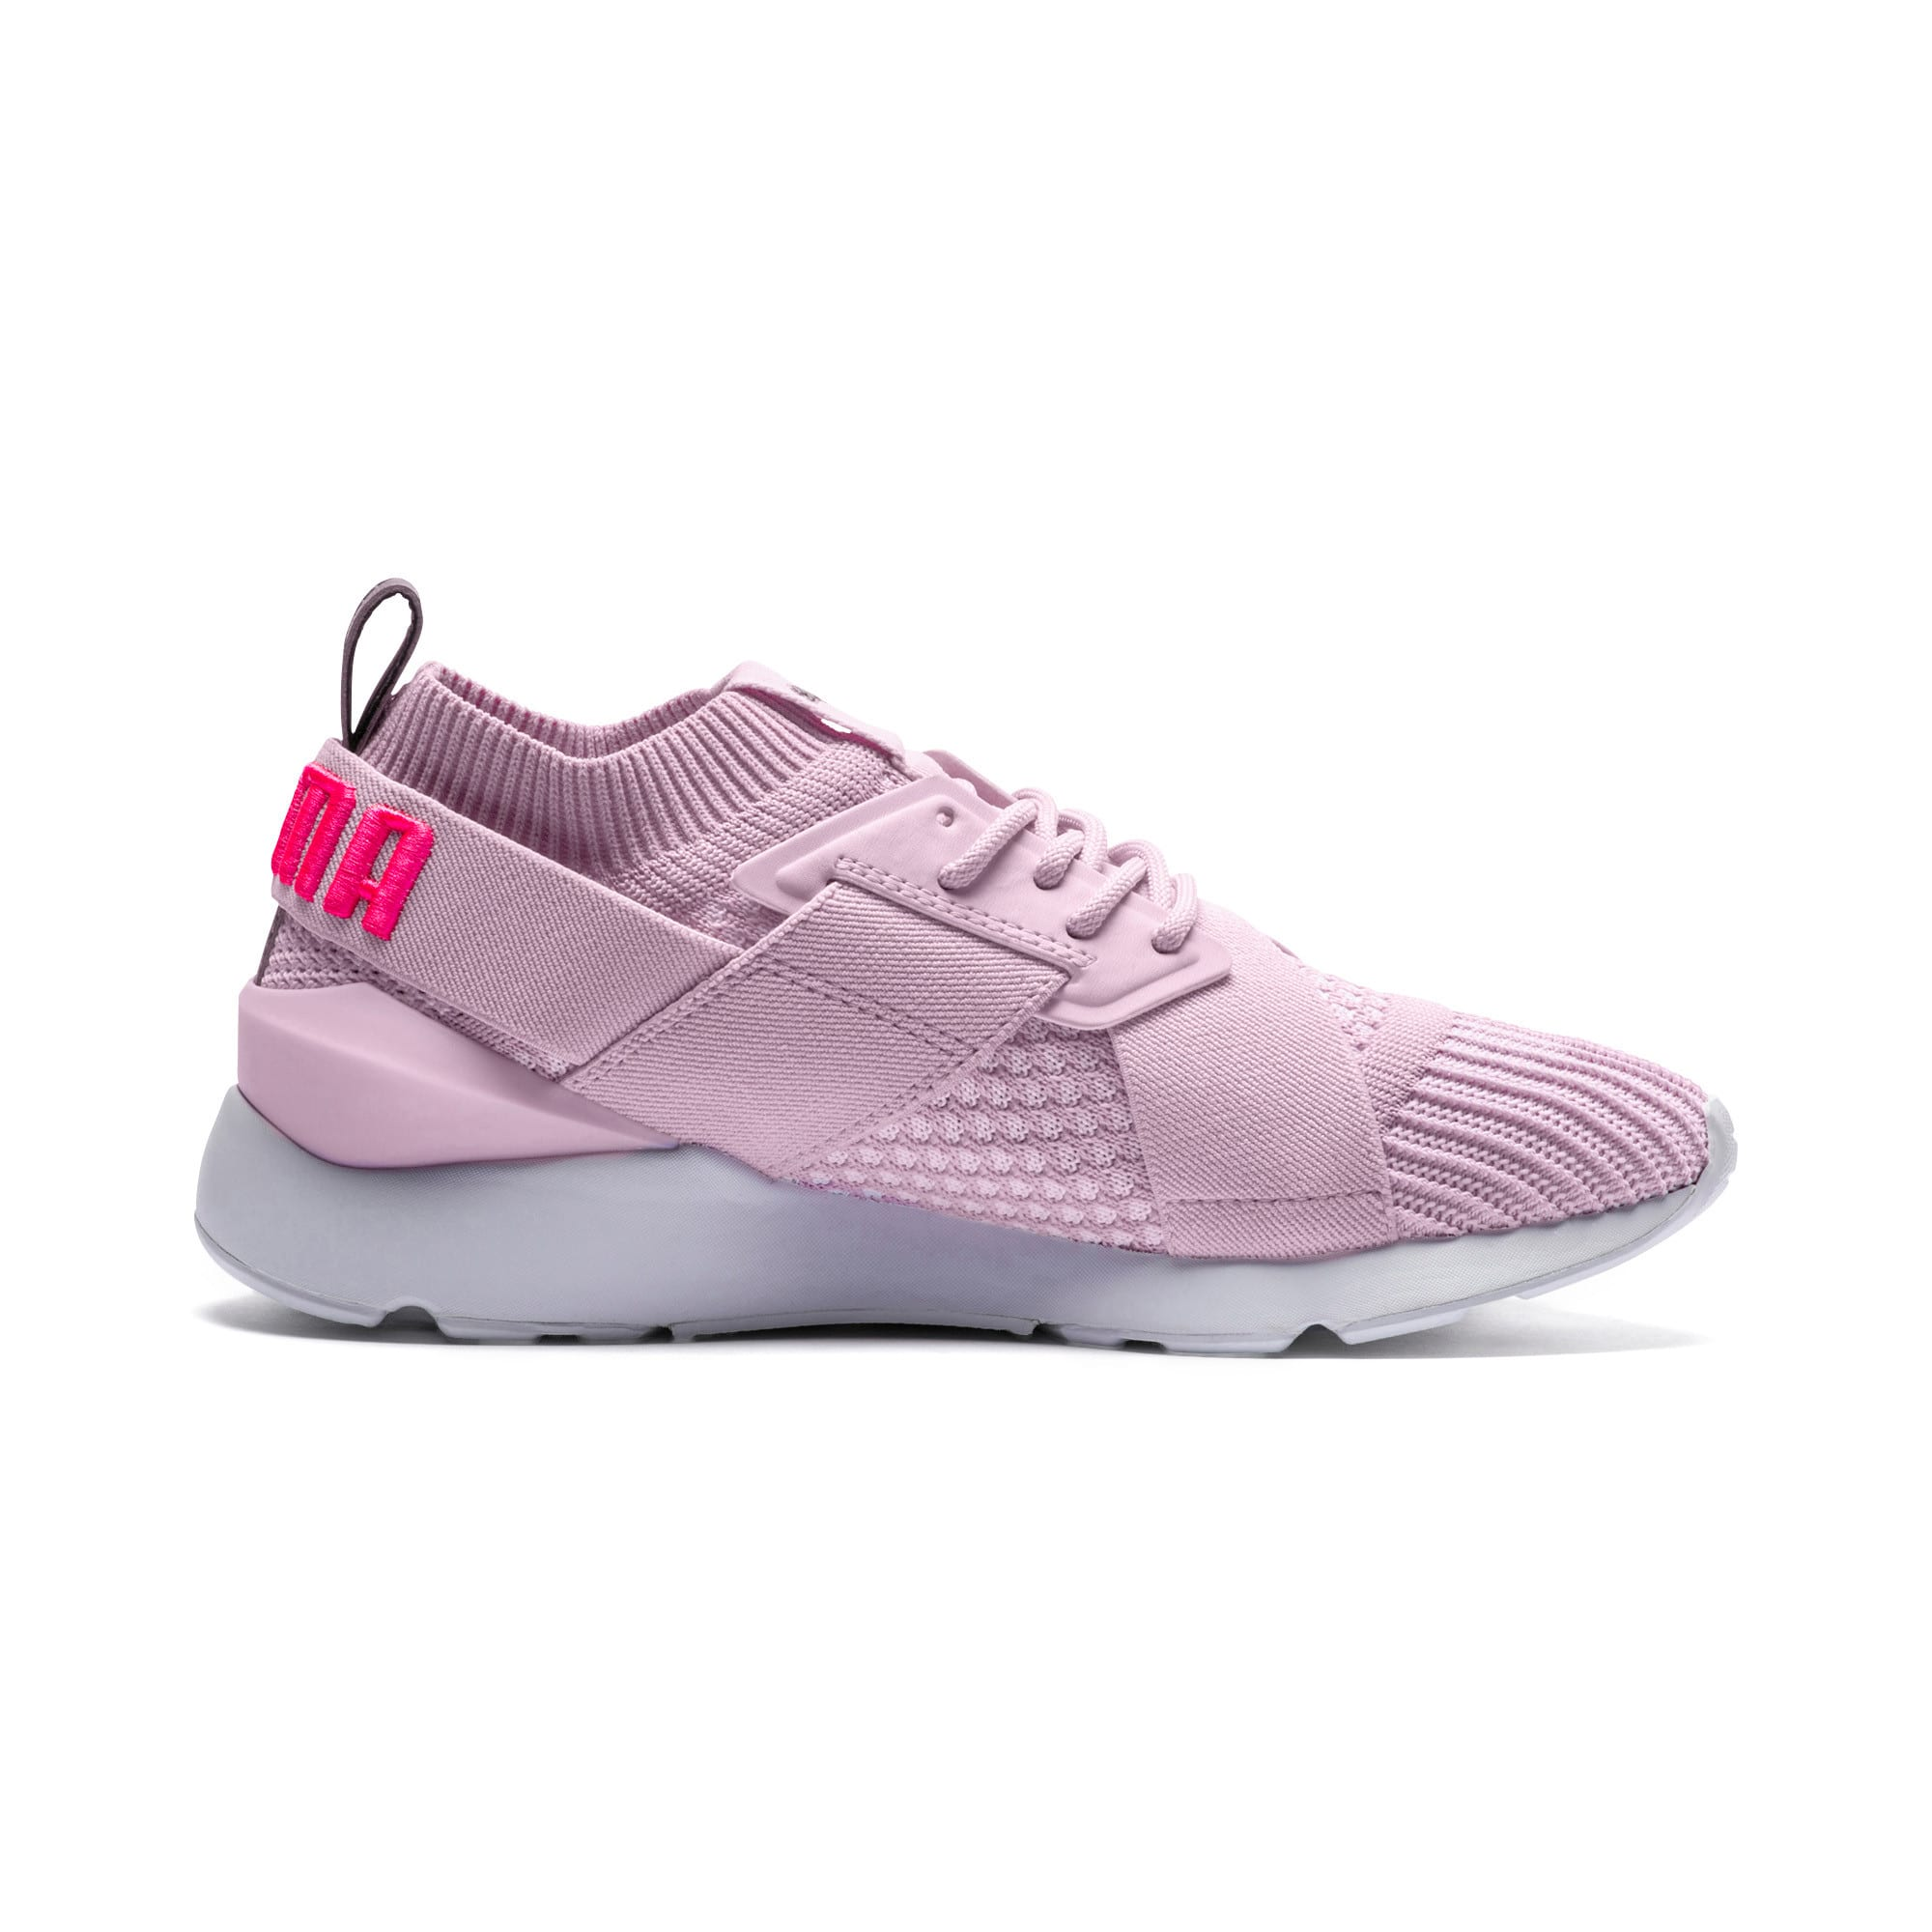 Thumbnail 5 of Muse evoKNIT Women's Trainers, Winsome Orchid, medium-IND